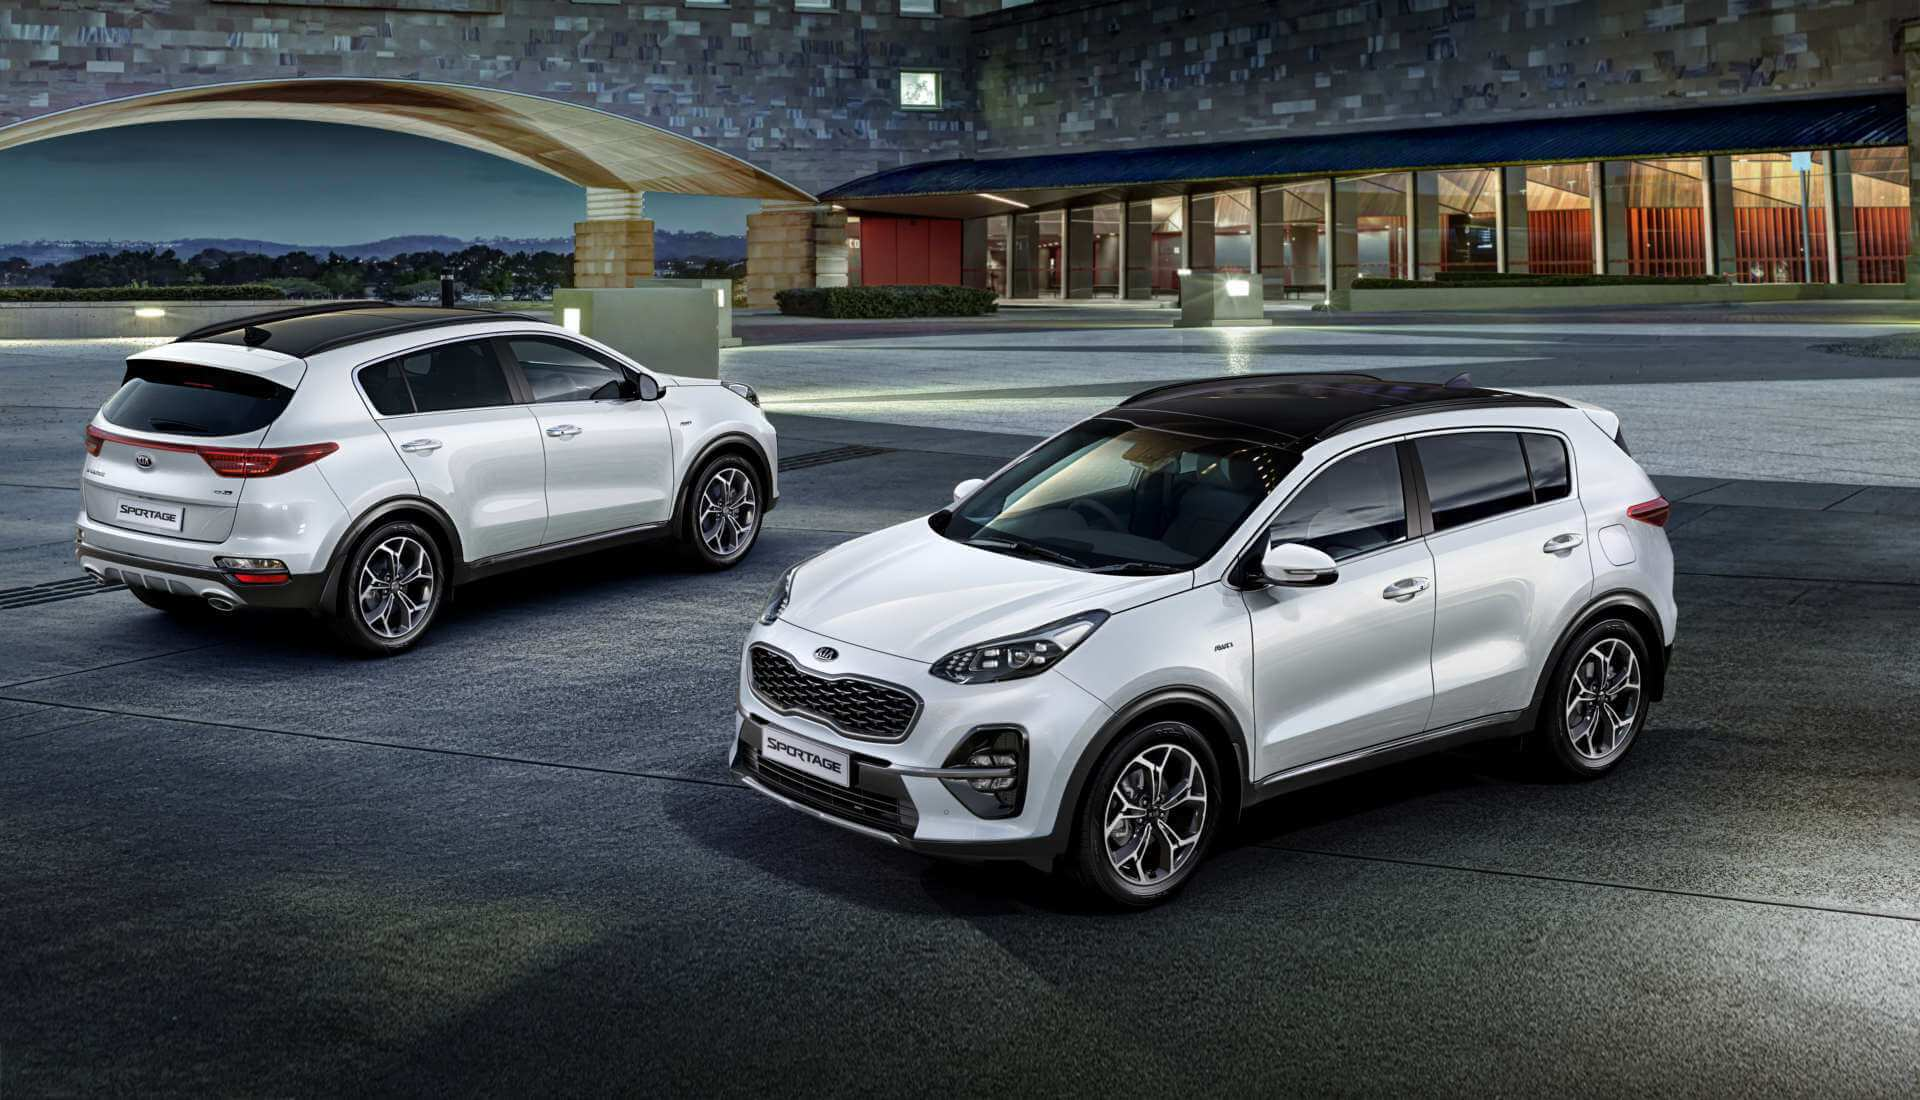 77 Gallery of Kia Sportage 2019 Review with Kia Sportage 2019